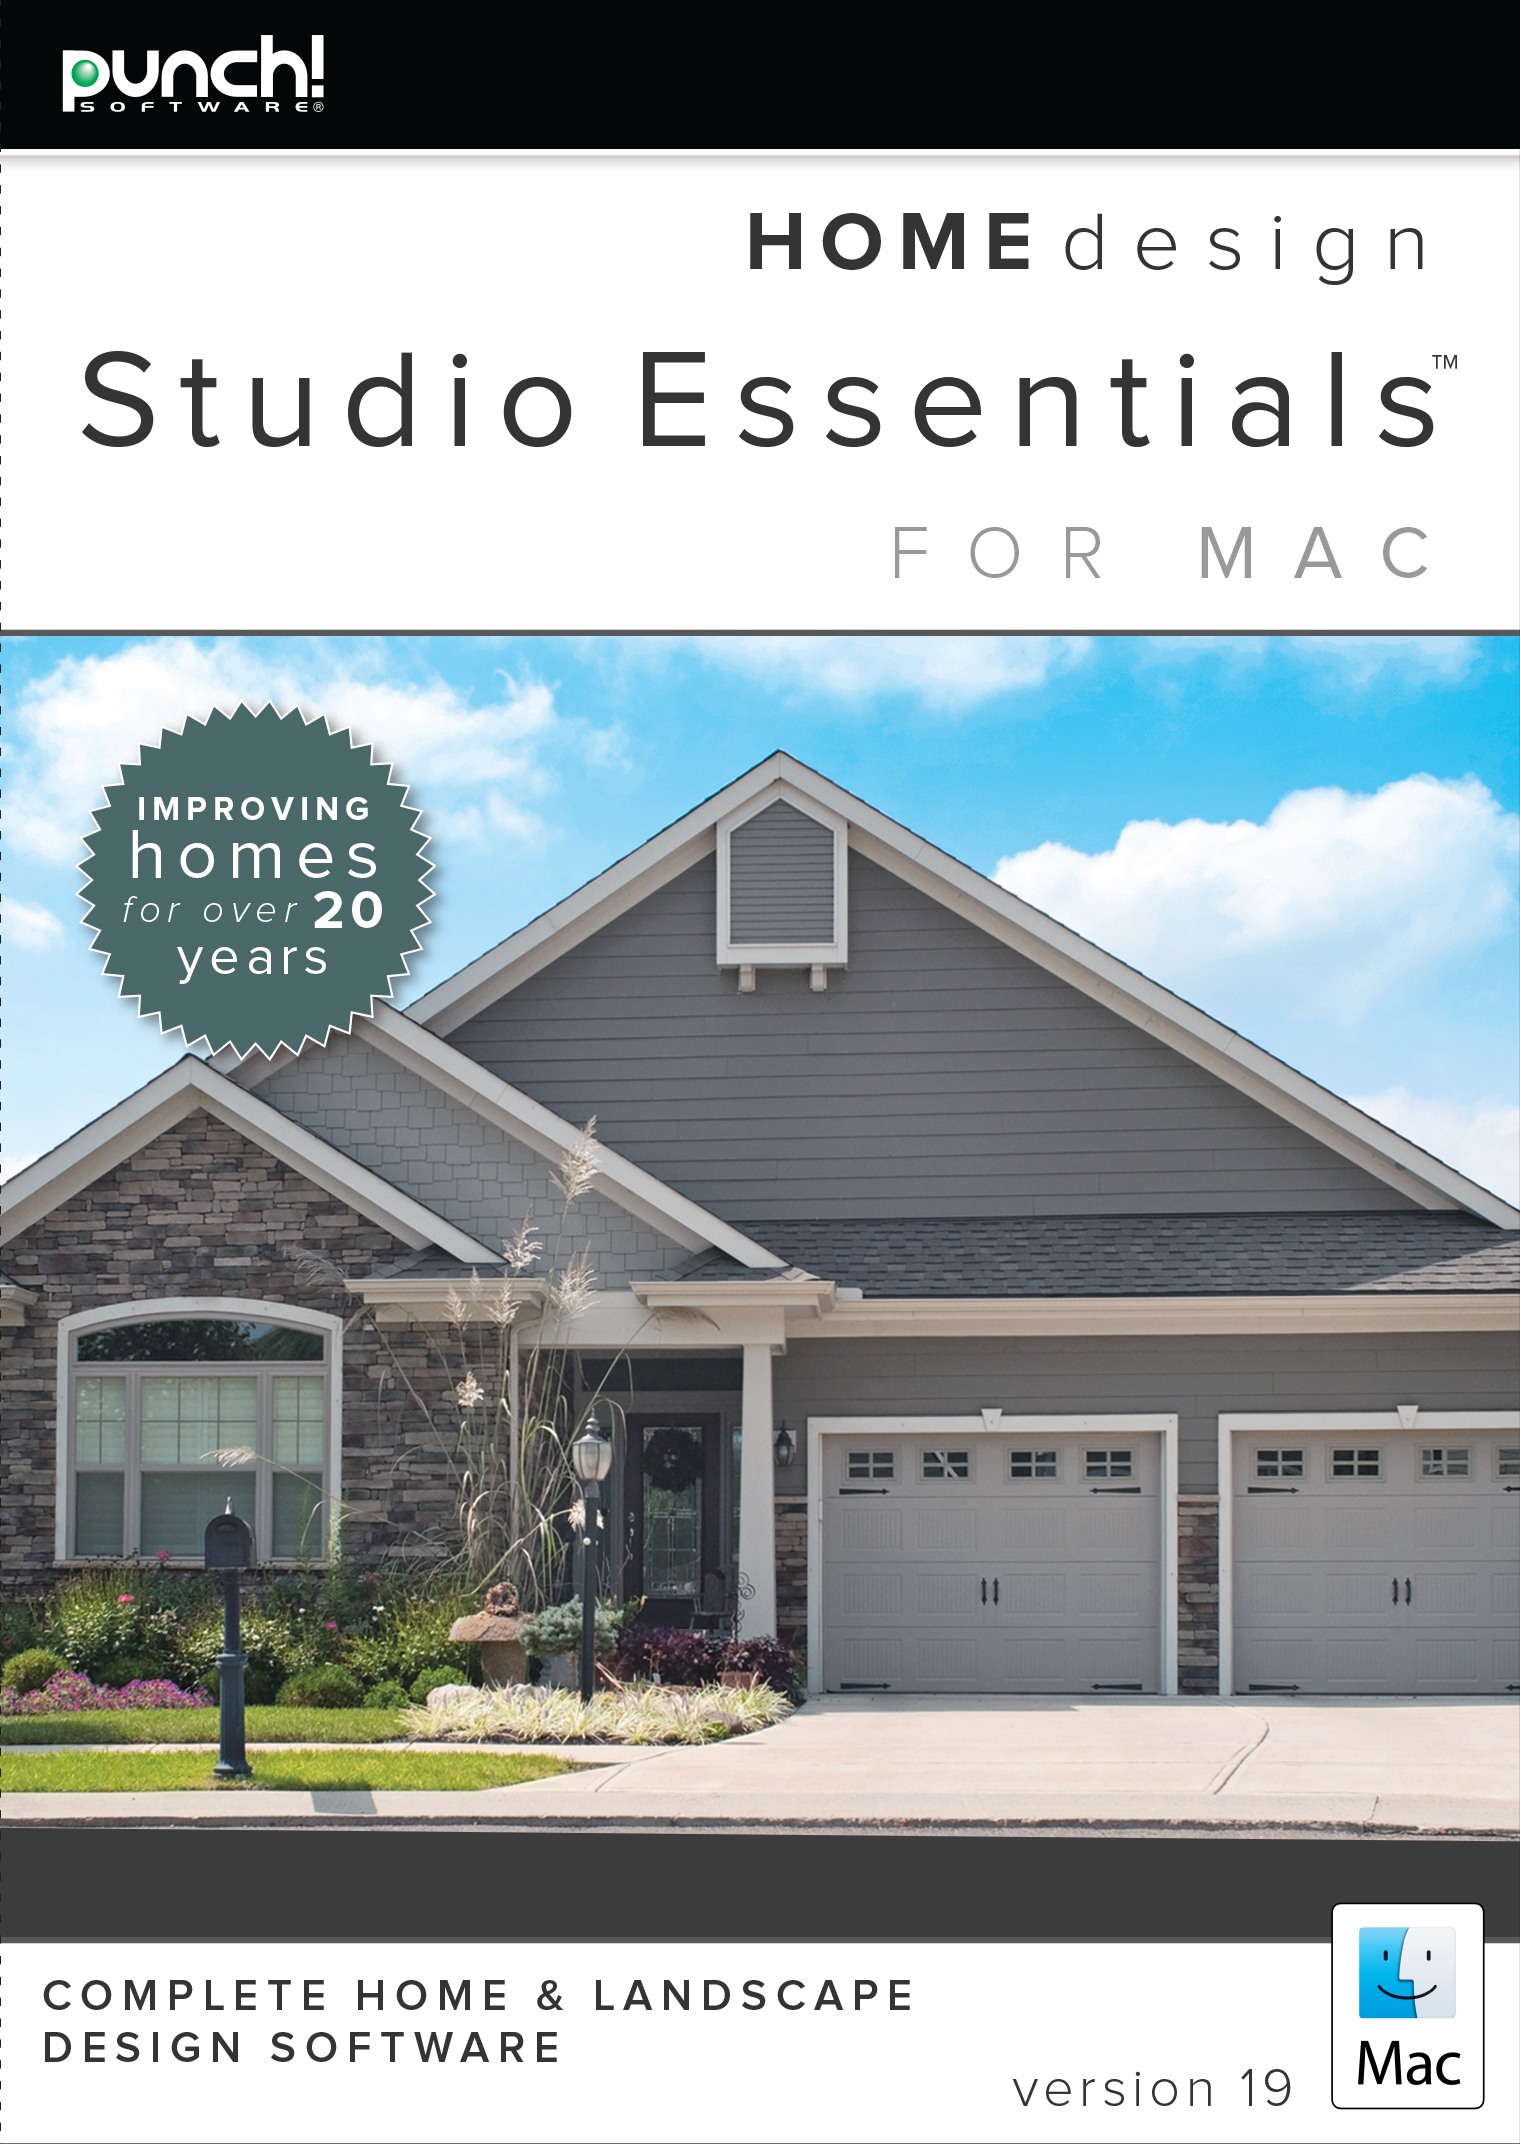 Punch! Home Design Essentials for Mac v19 [Download] by Encore